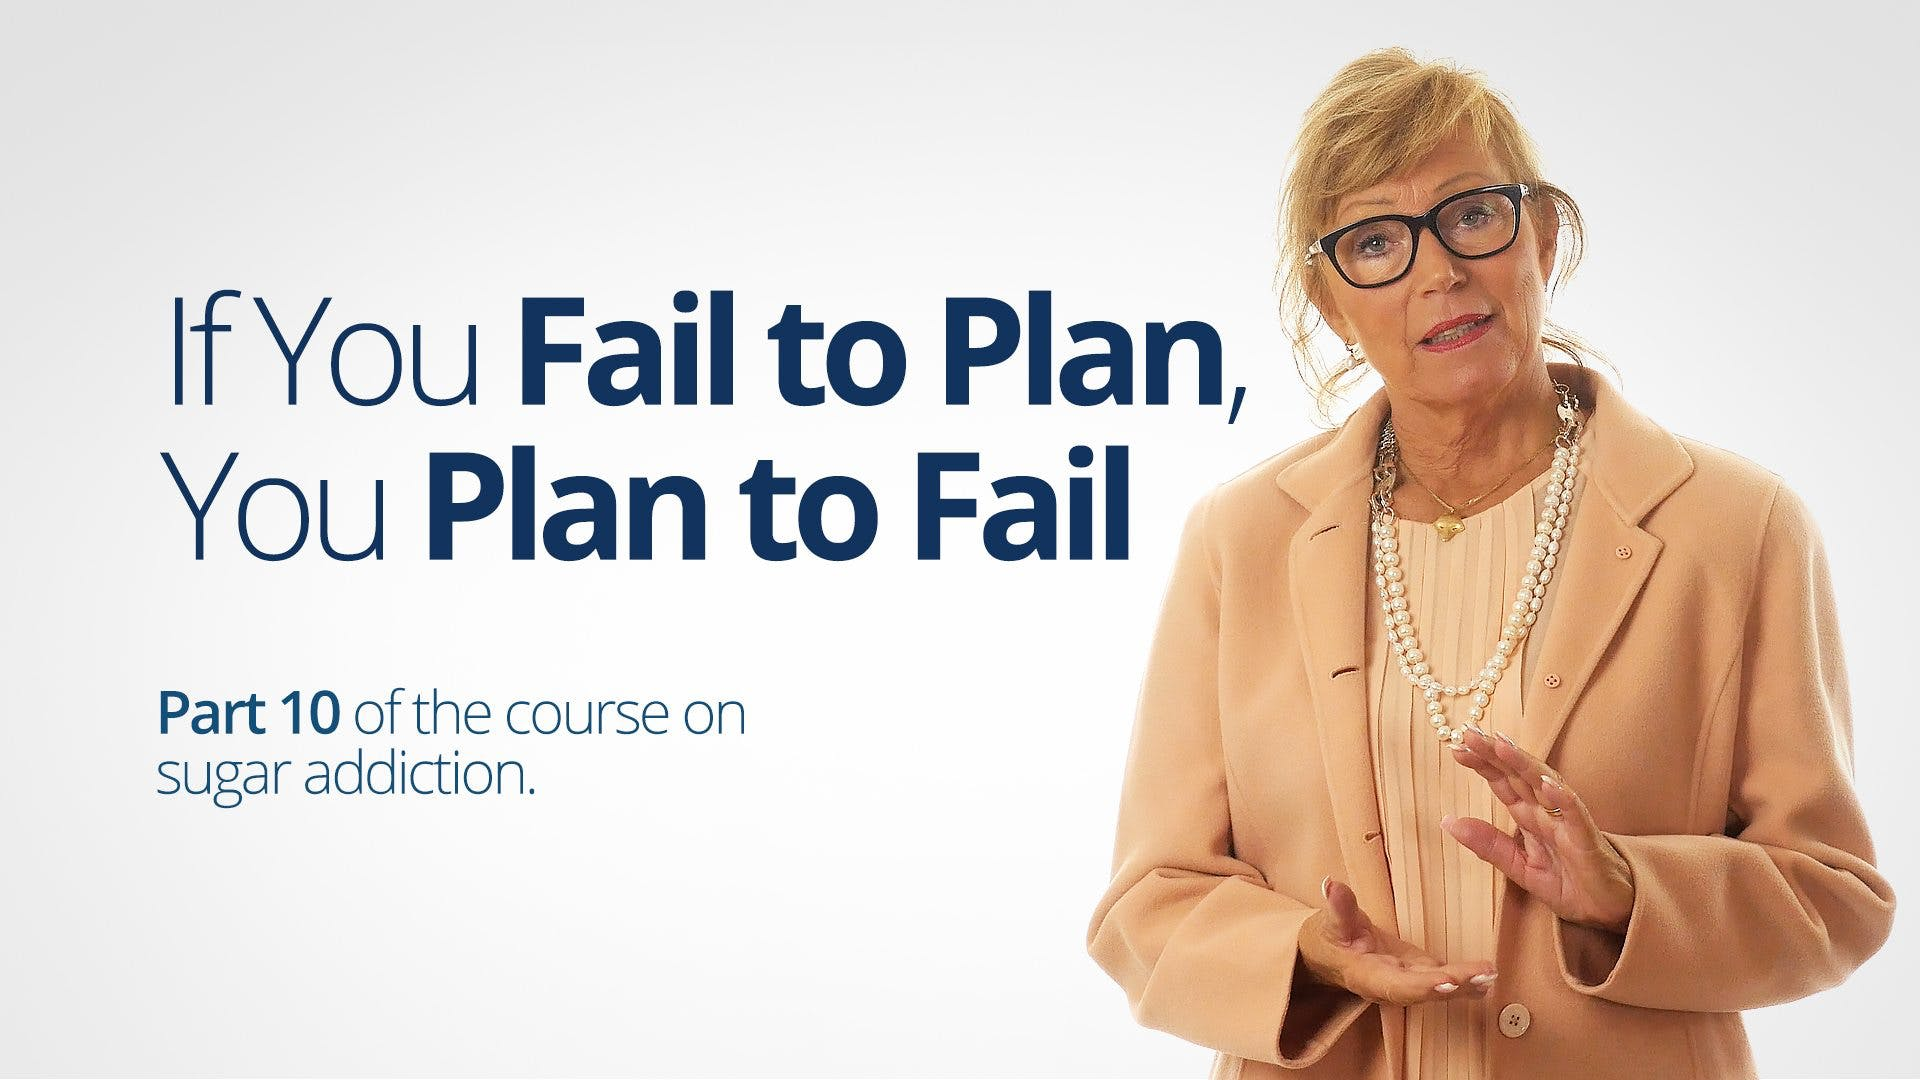 If You Fail to Plan, You Plan to Fail – Bitten Jonsson